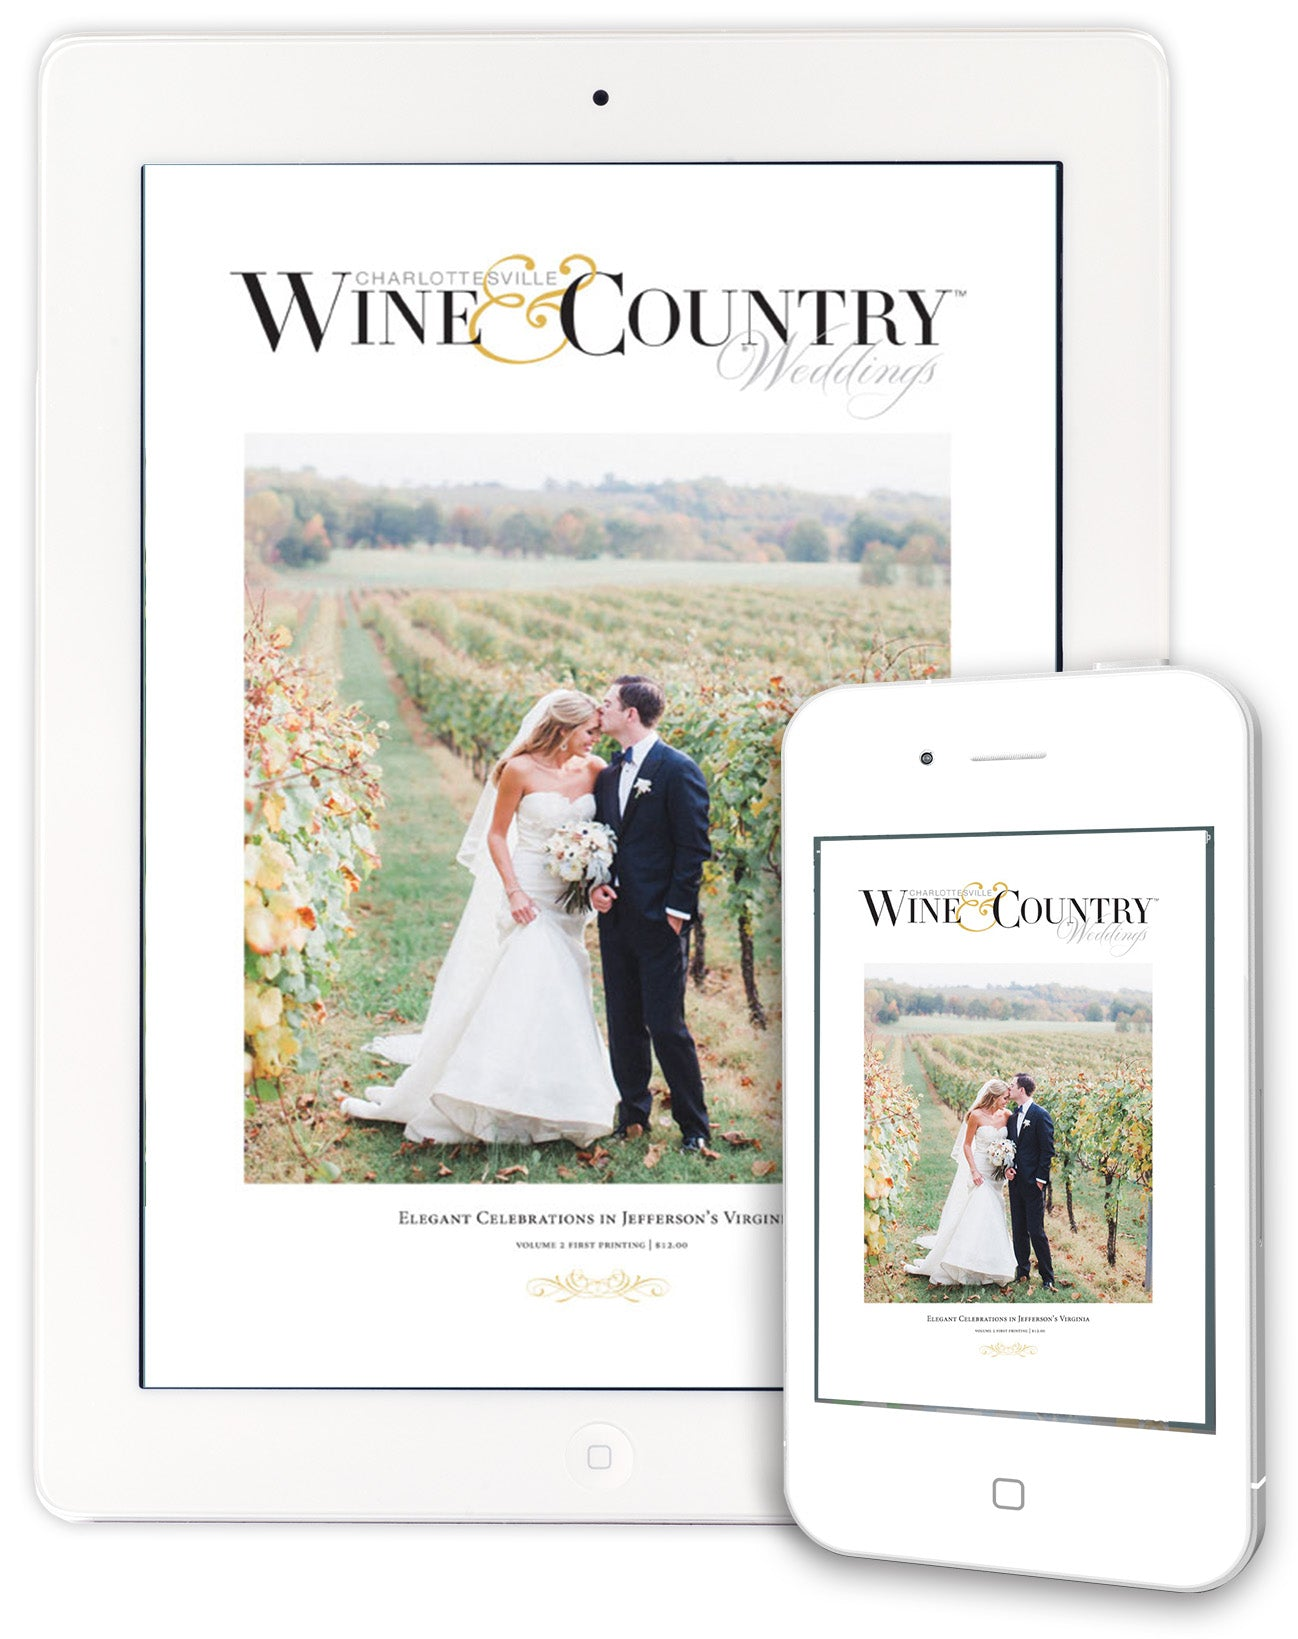 W&C Weddings Vol. 2 DIGITAL - SINGLE ISSUE